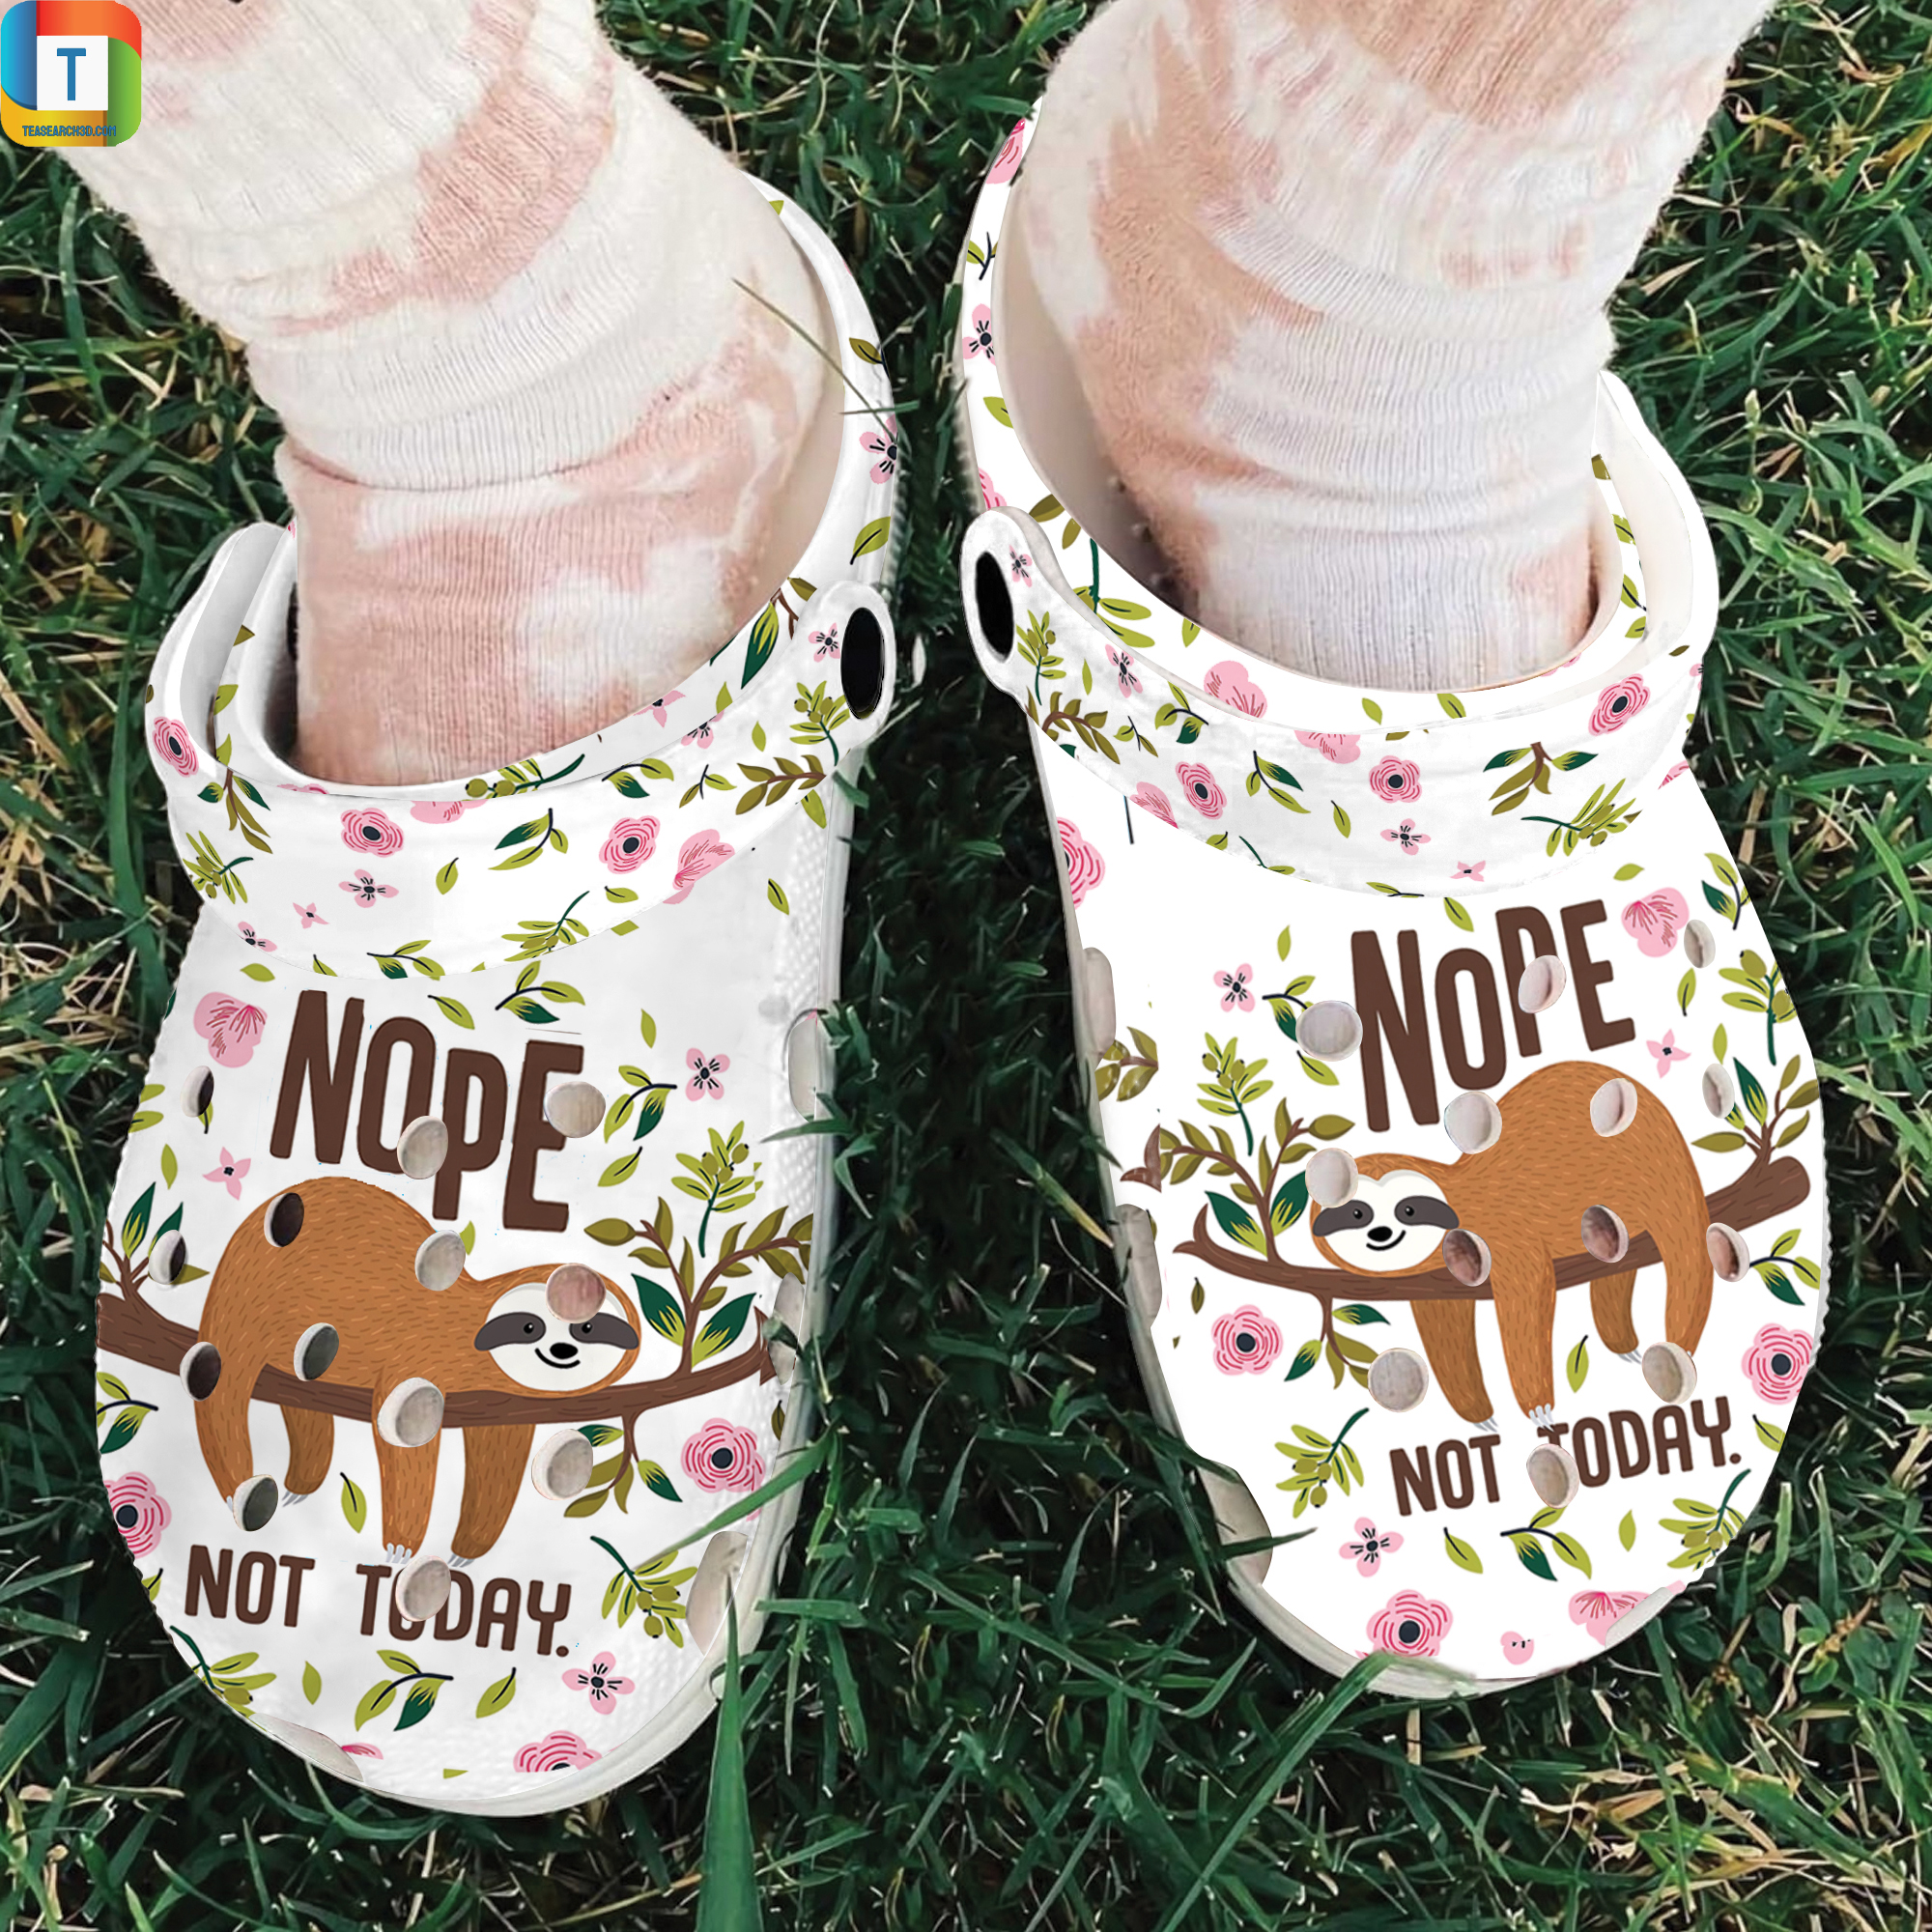 Sloth Nope Not Today Slippers Crocband Shoes 2